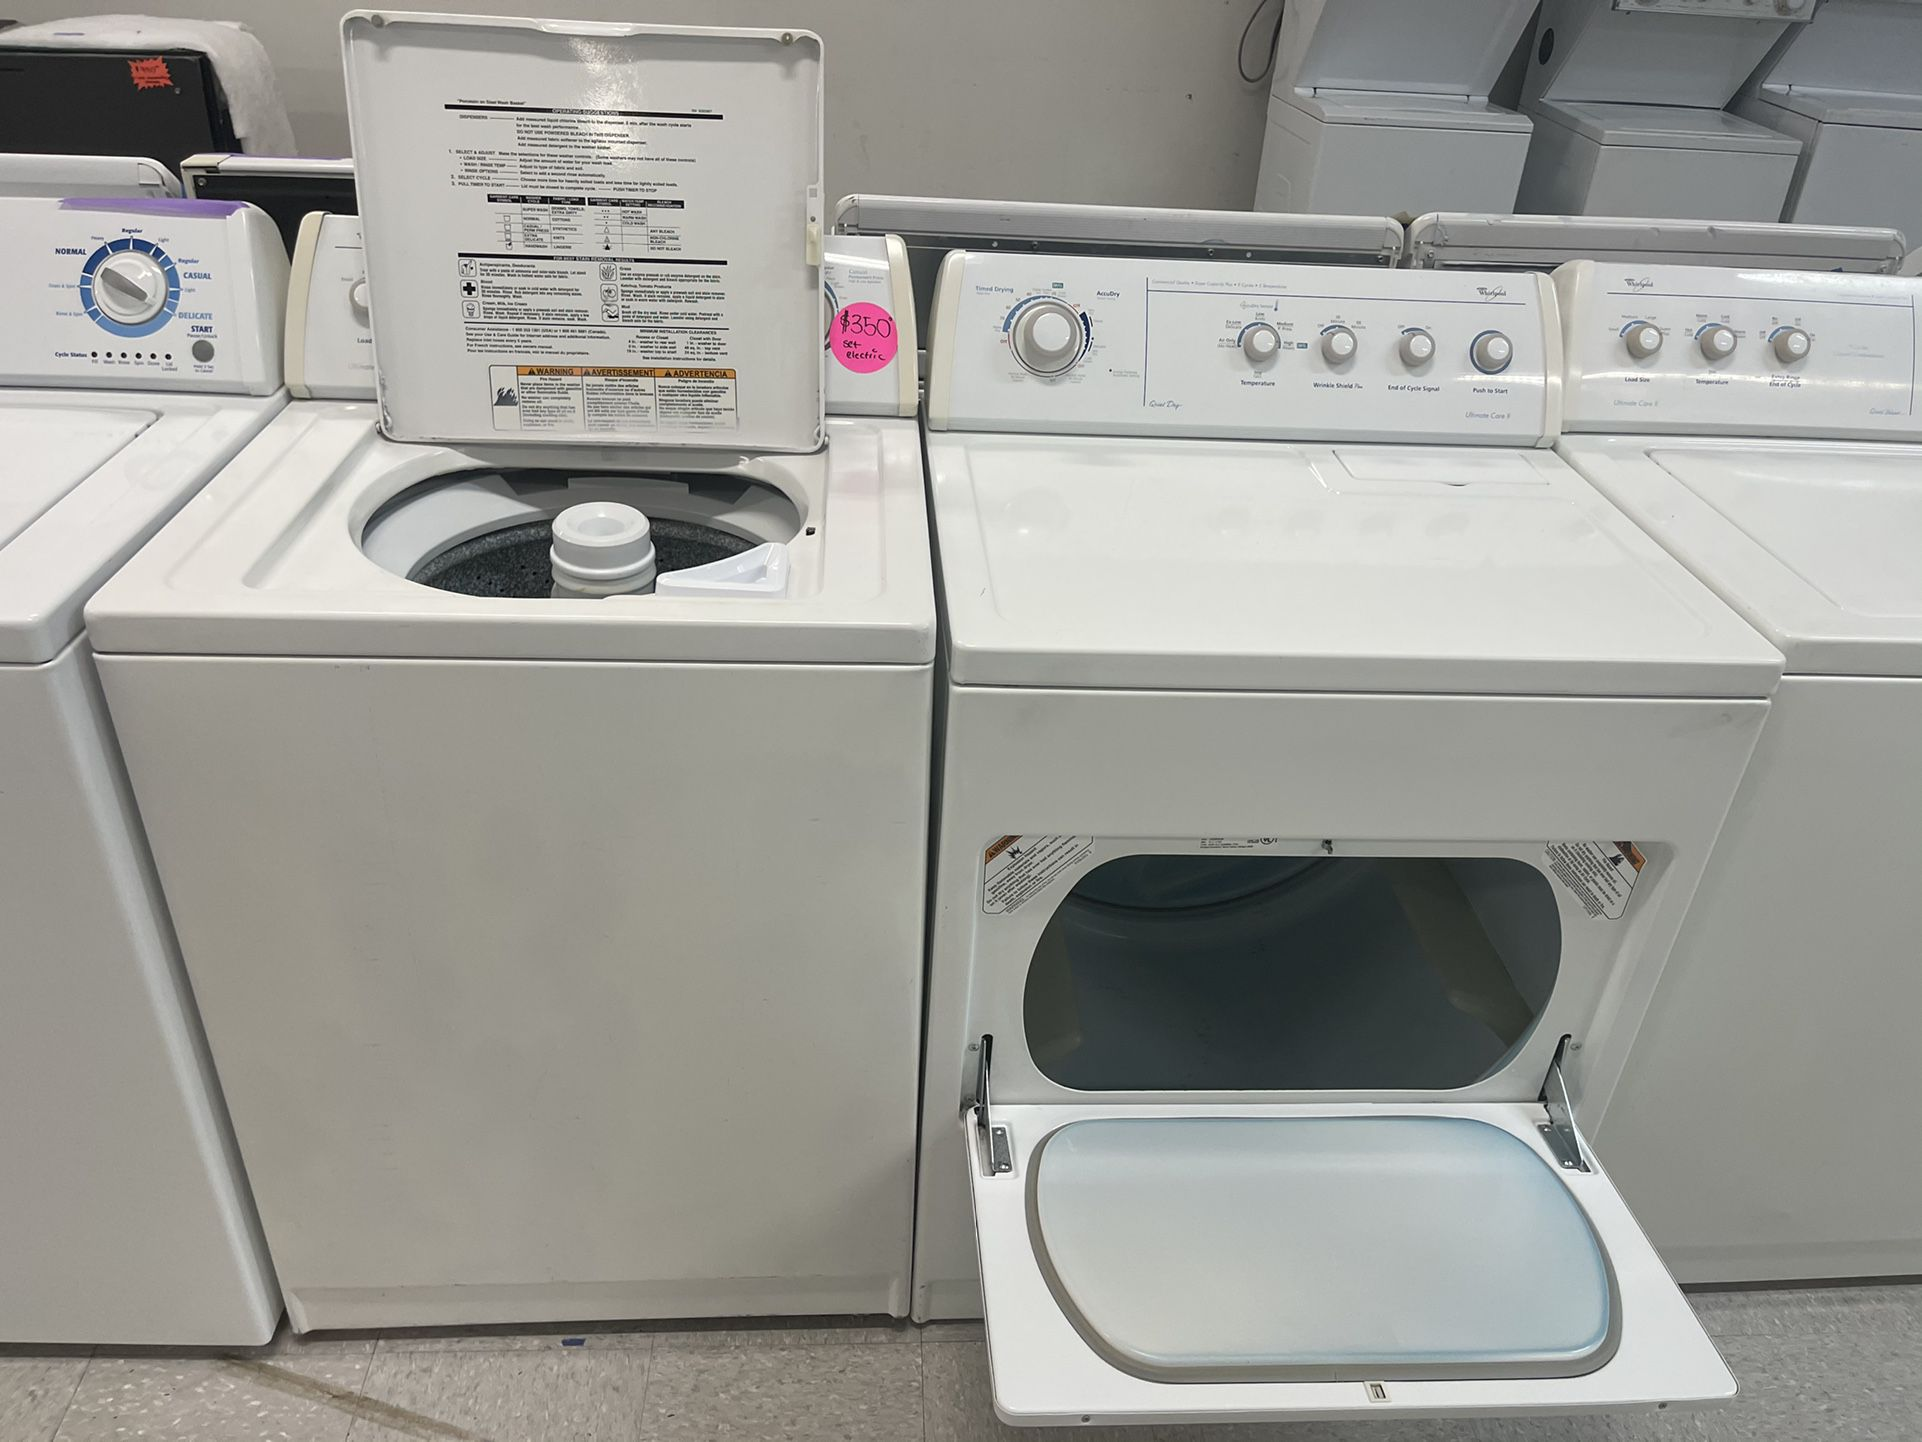 Whirlpool White Top Load Washer And Electric Dryer Set In Excellent Conditions With 4 Months Warranty